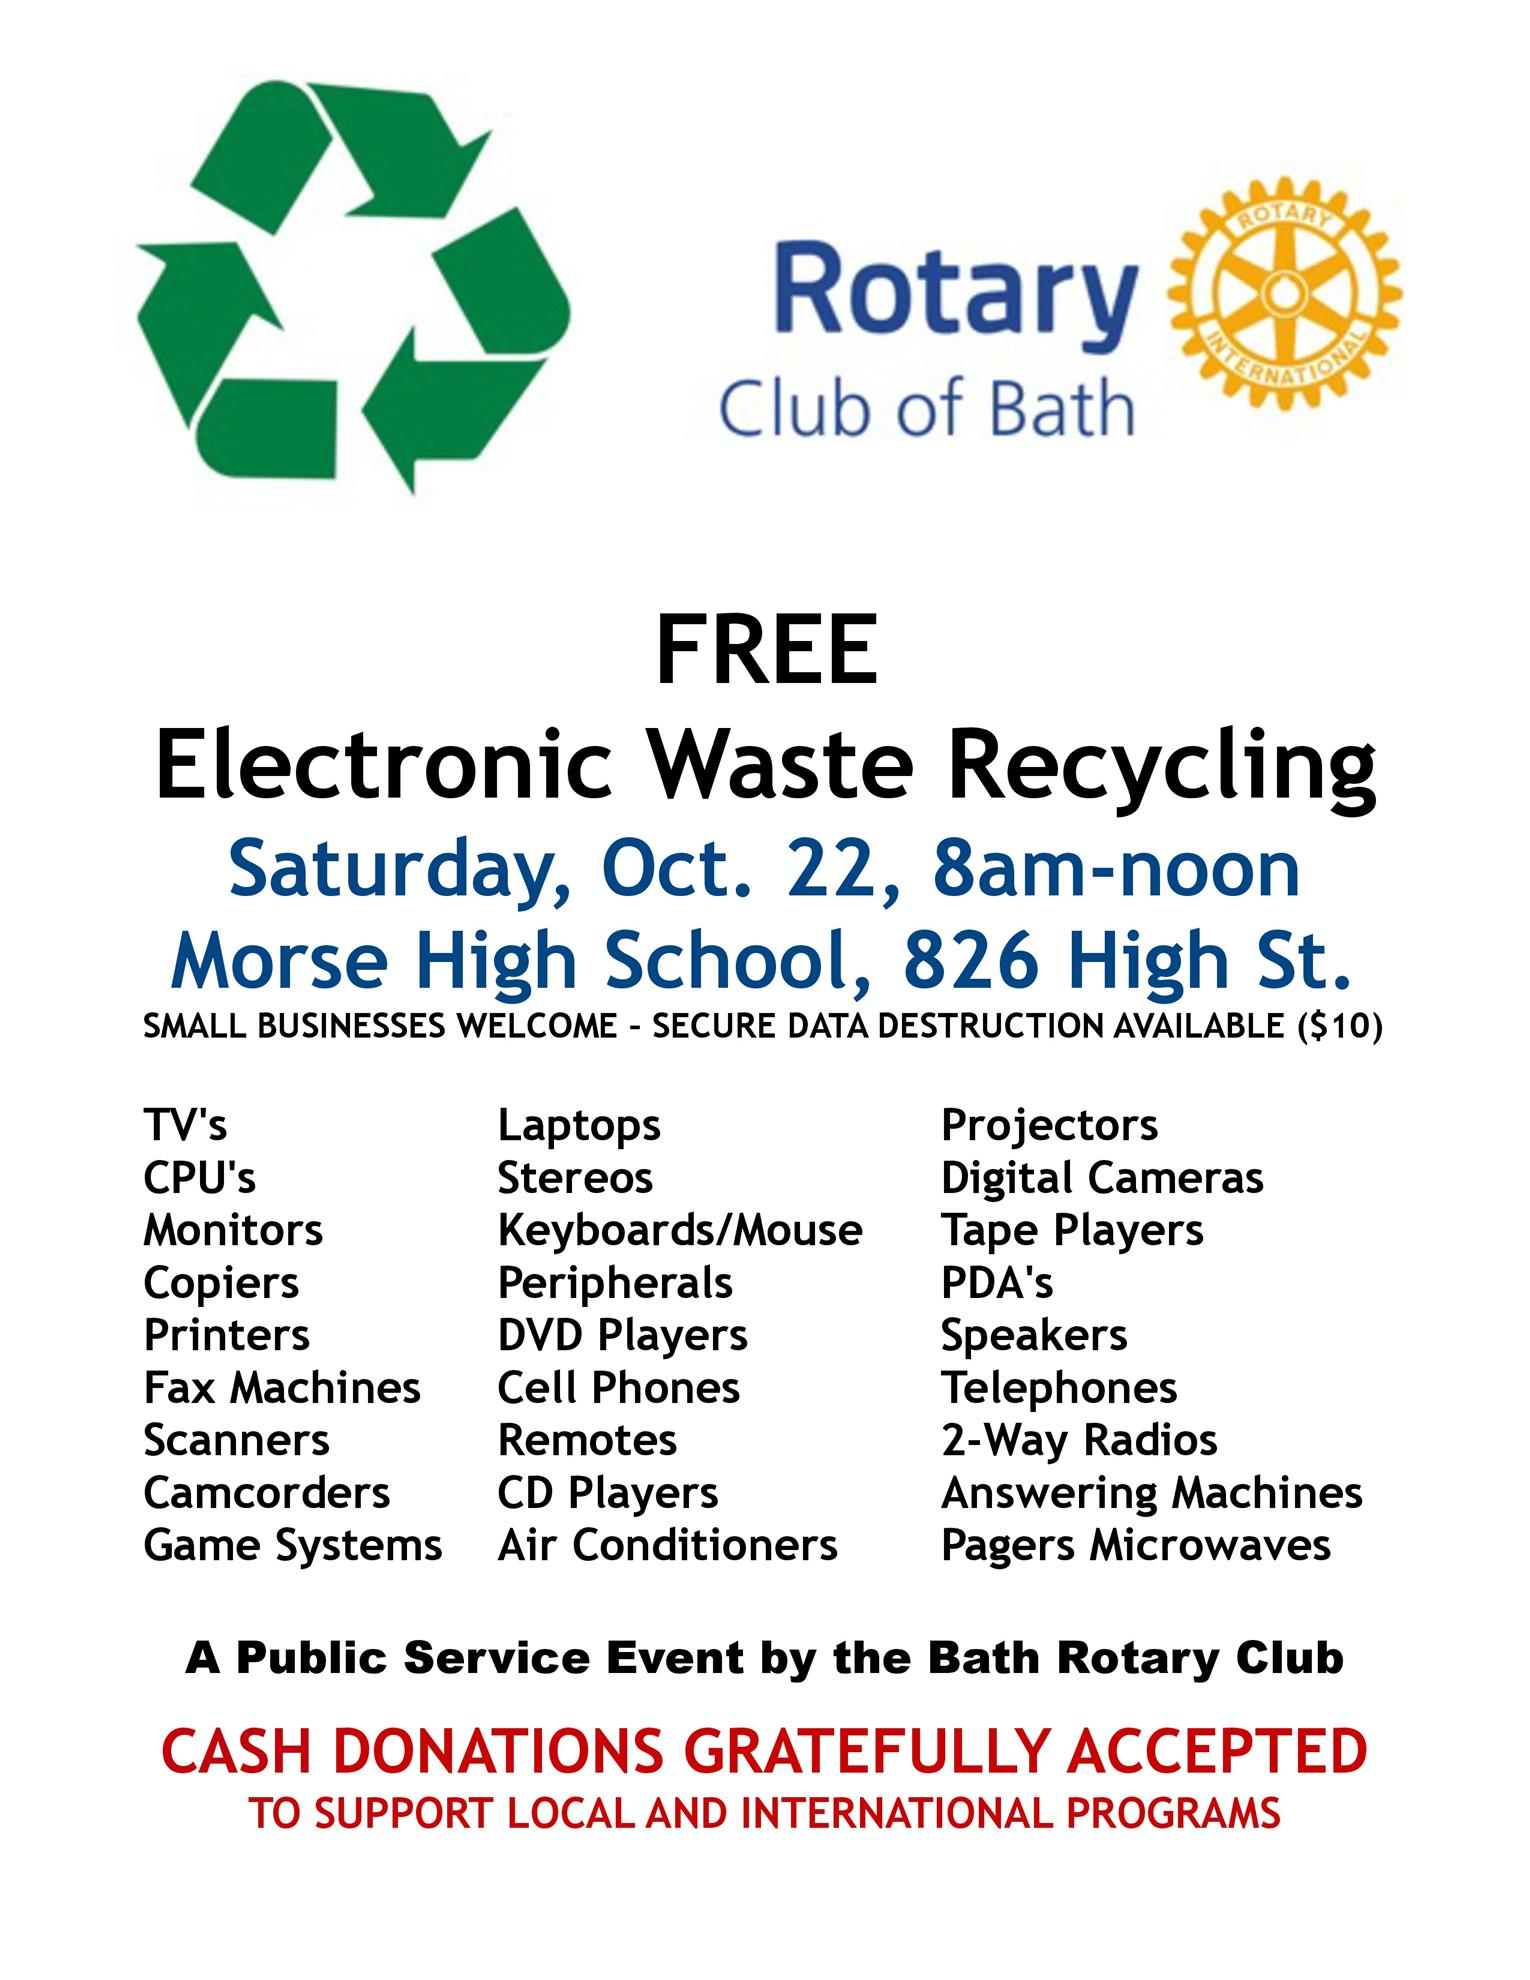 Electronic Waste Collection October 22, 8 a m -noon at Morse